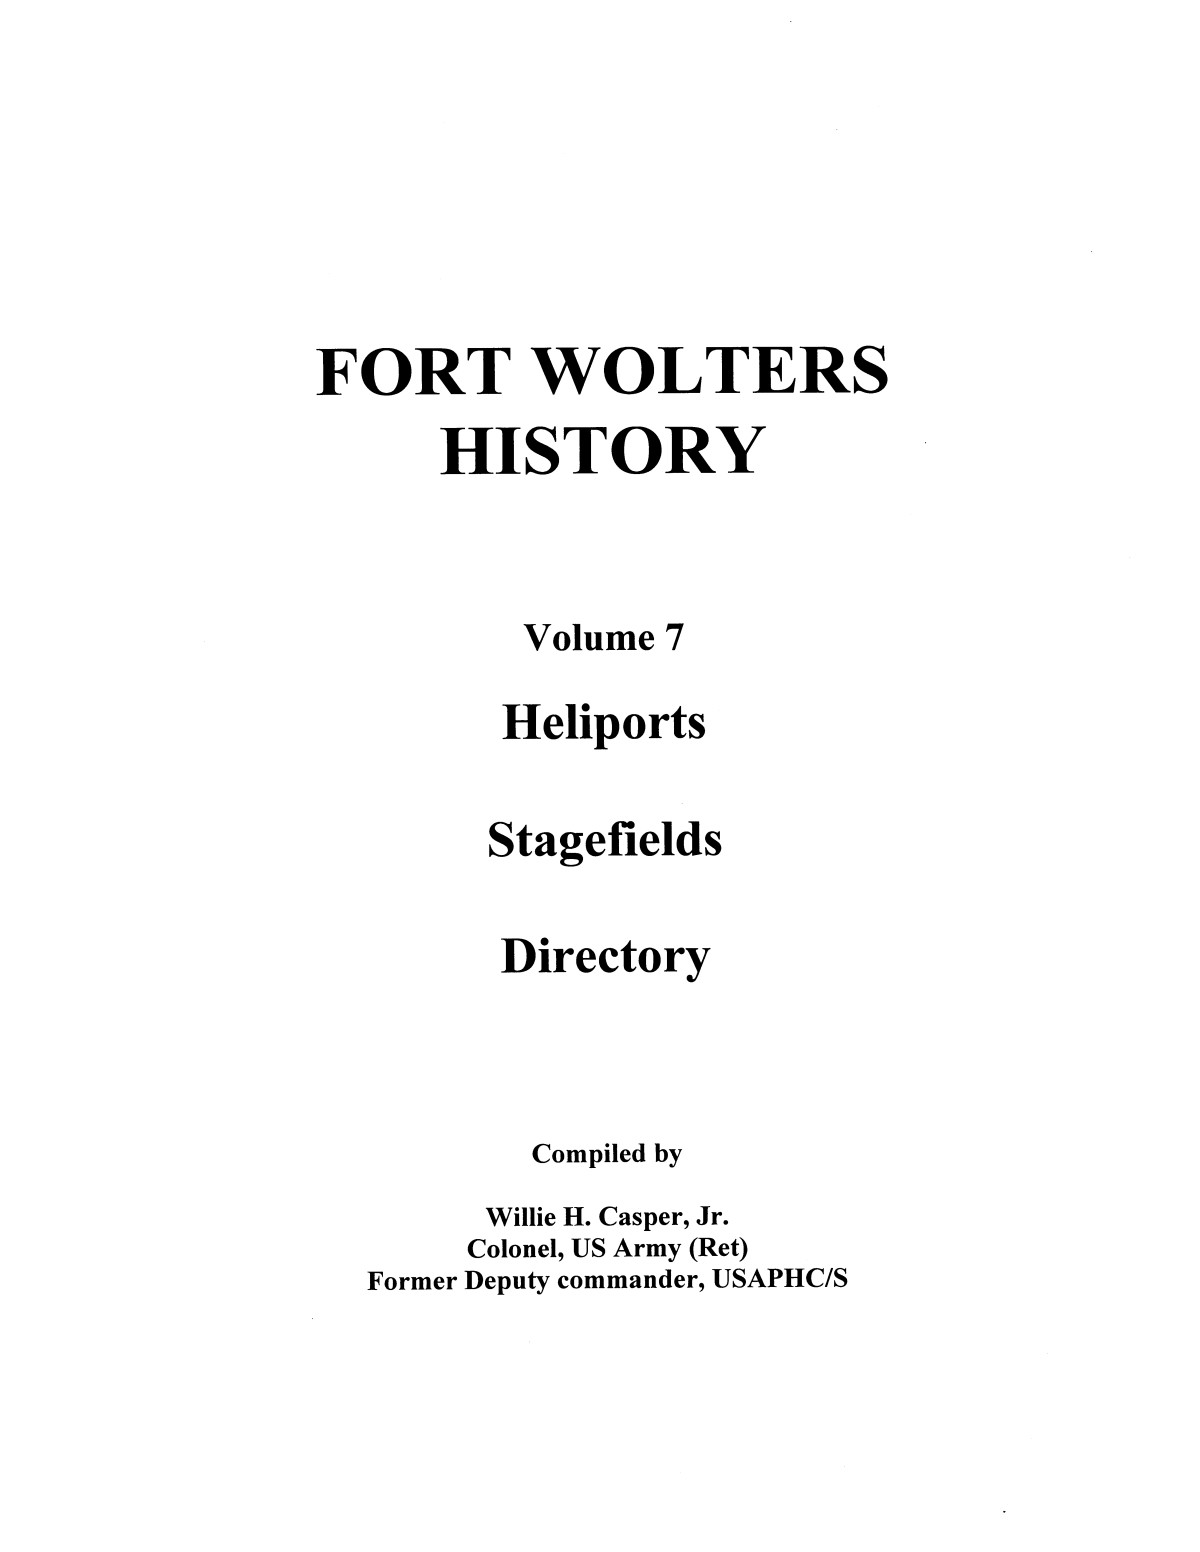 Pictorial History of Fort Wolters, Volume 7: Heliports, Stagefields, Directory                                                                                                      [Sequence #]: 1 of 171